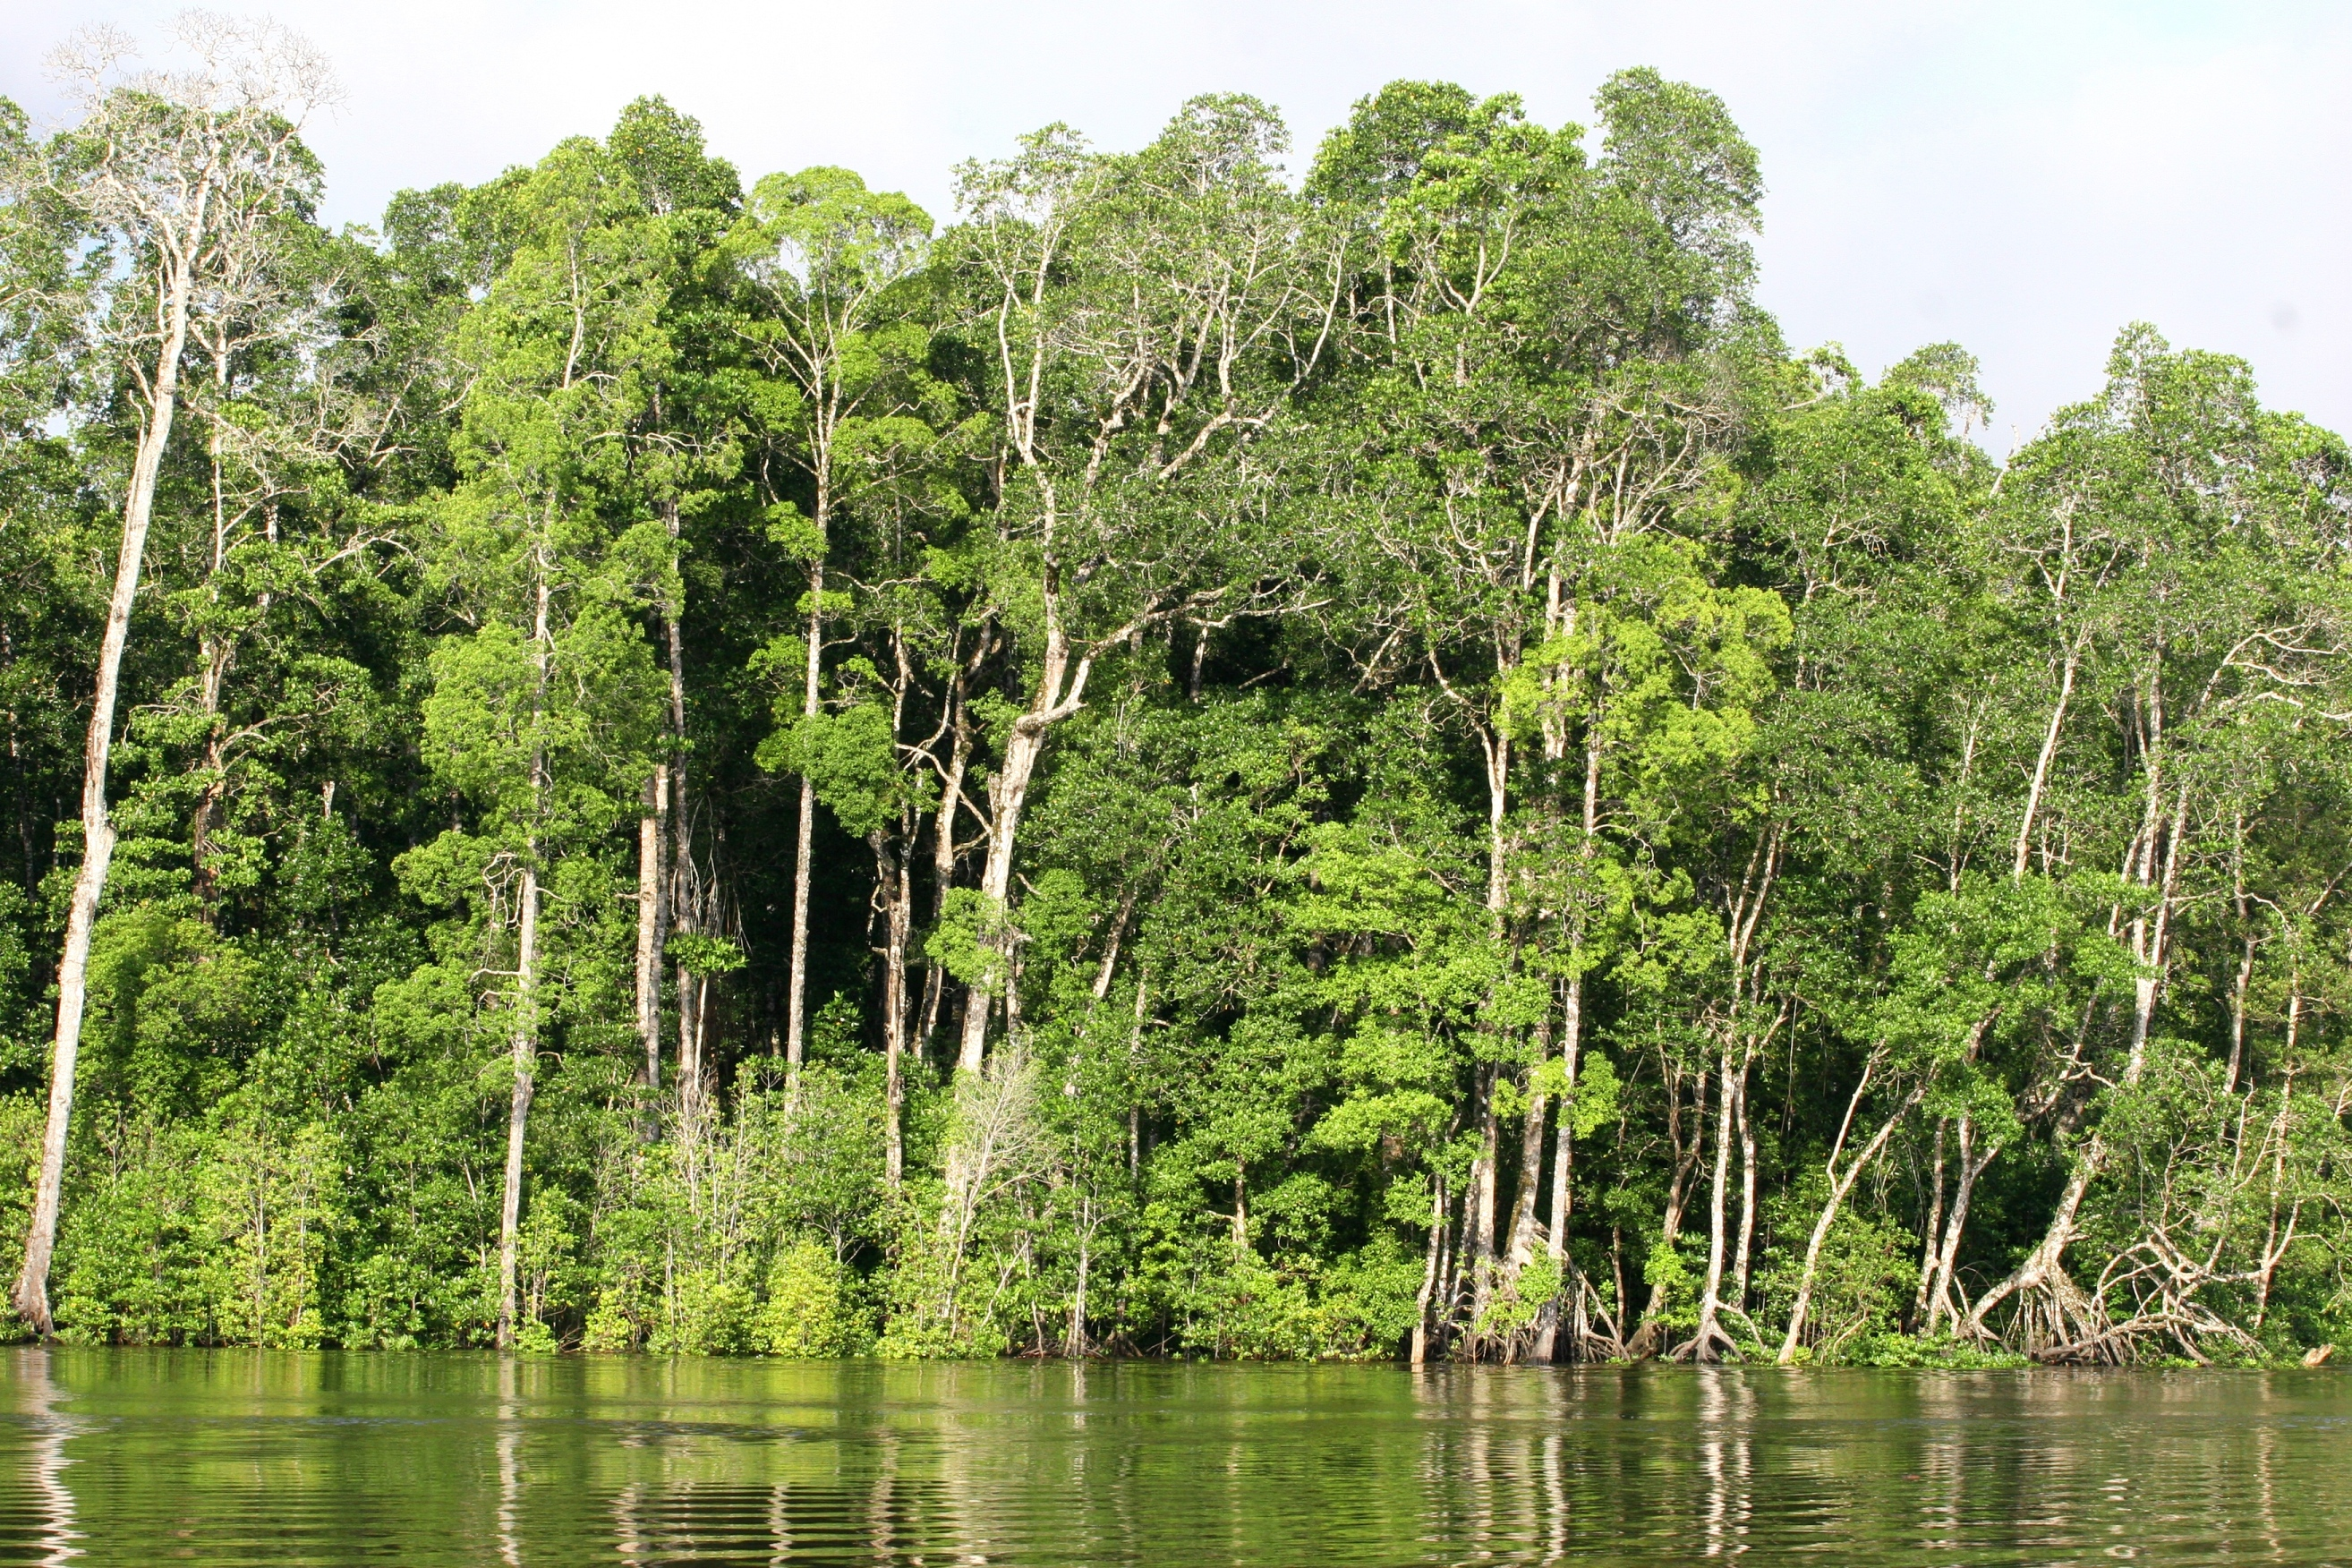 Image of forest in Indonesia.